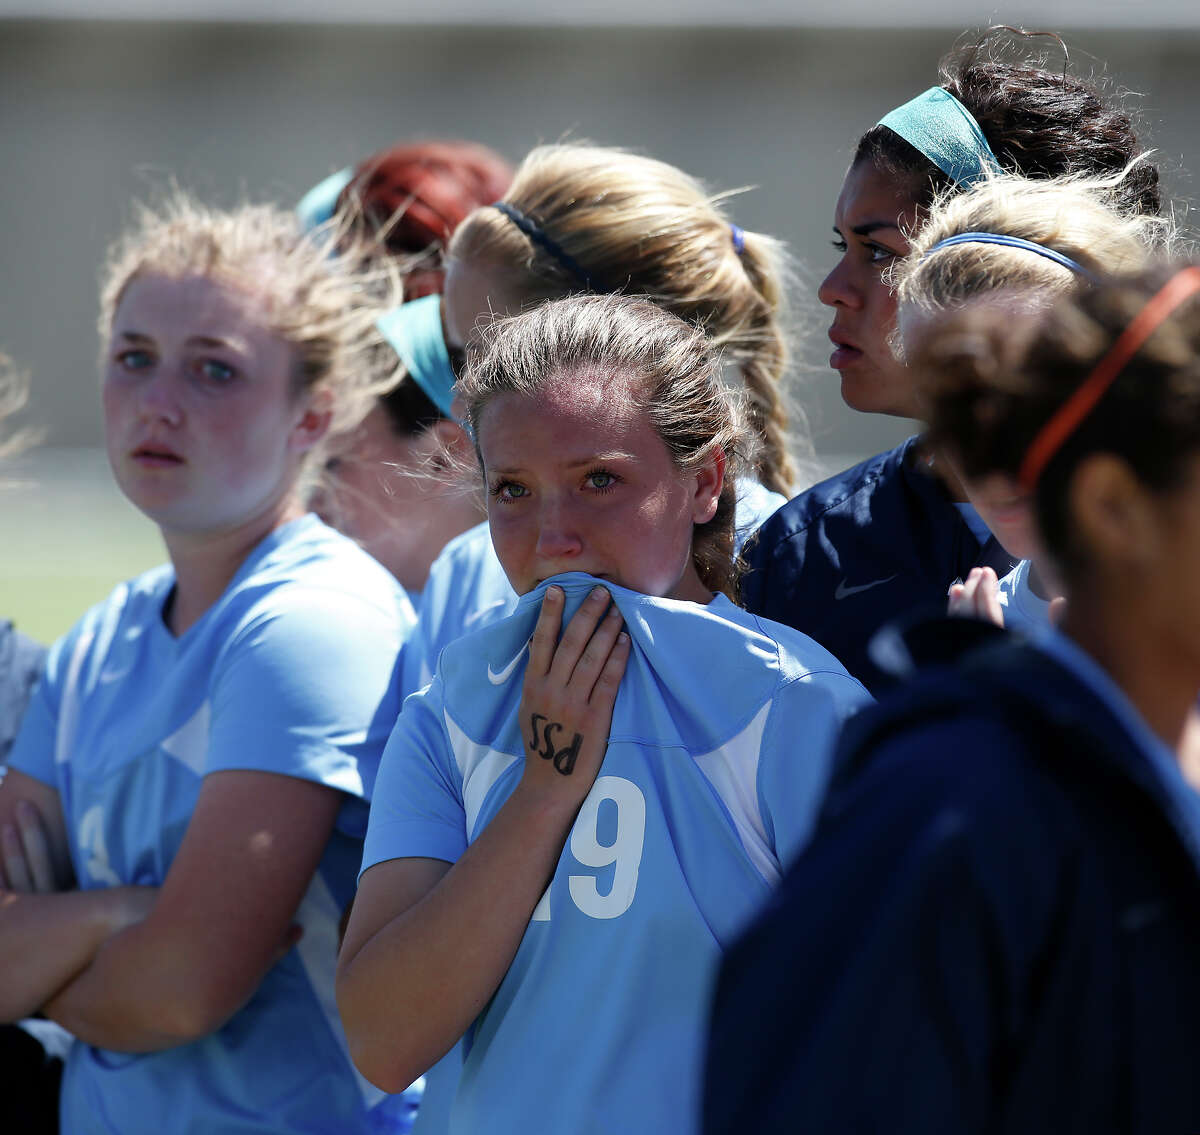 Johnson's Madison Gordon, center, tears up after losing the Class 5A girls state tournament semifinal against Southlake Carroll at Birkelbach Field in Georgetown on Friday, April 19, 2013. Southlake Carroll won 1-0. MICHAEL MILLER / FOR THE EXPRESS-NEWS